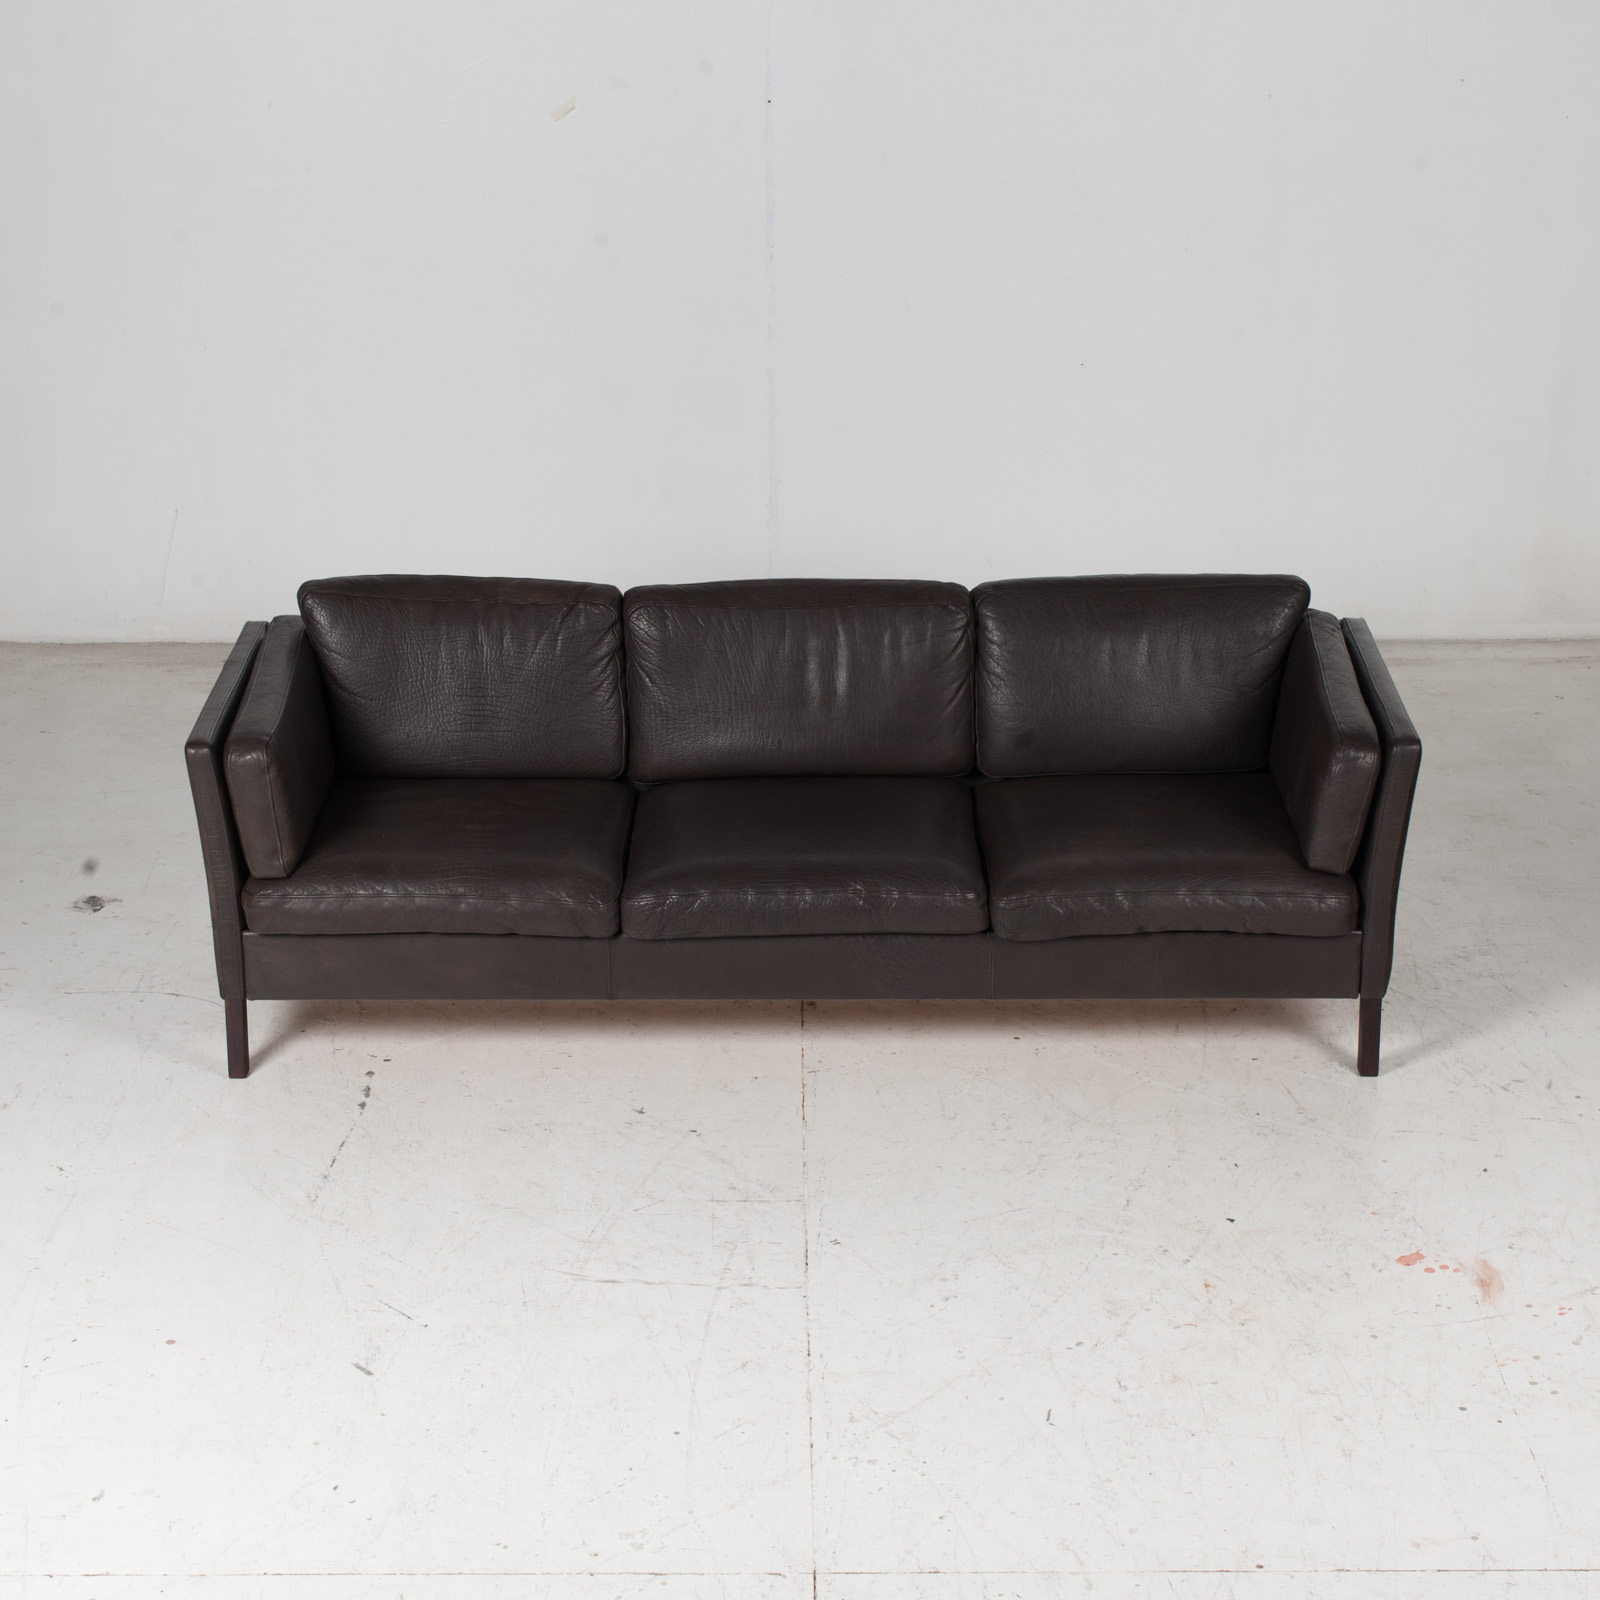 3 Seat Sofa In Dark Brown Leather, 1960s, Denmark 3